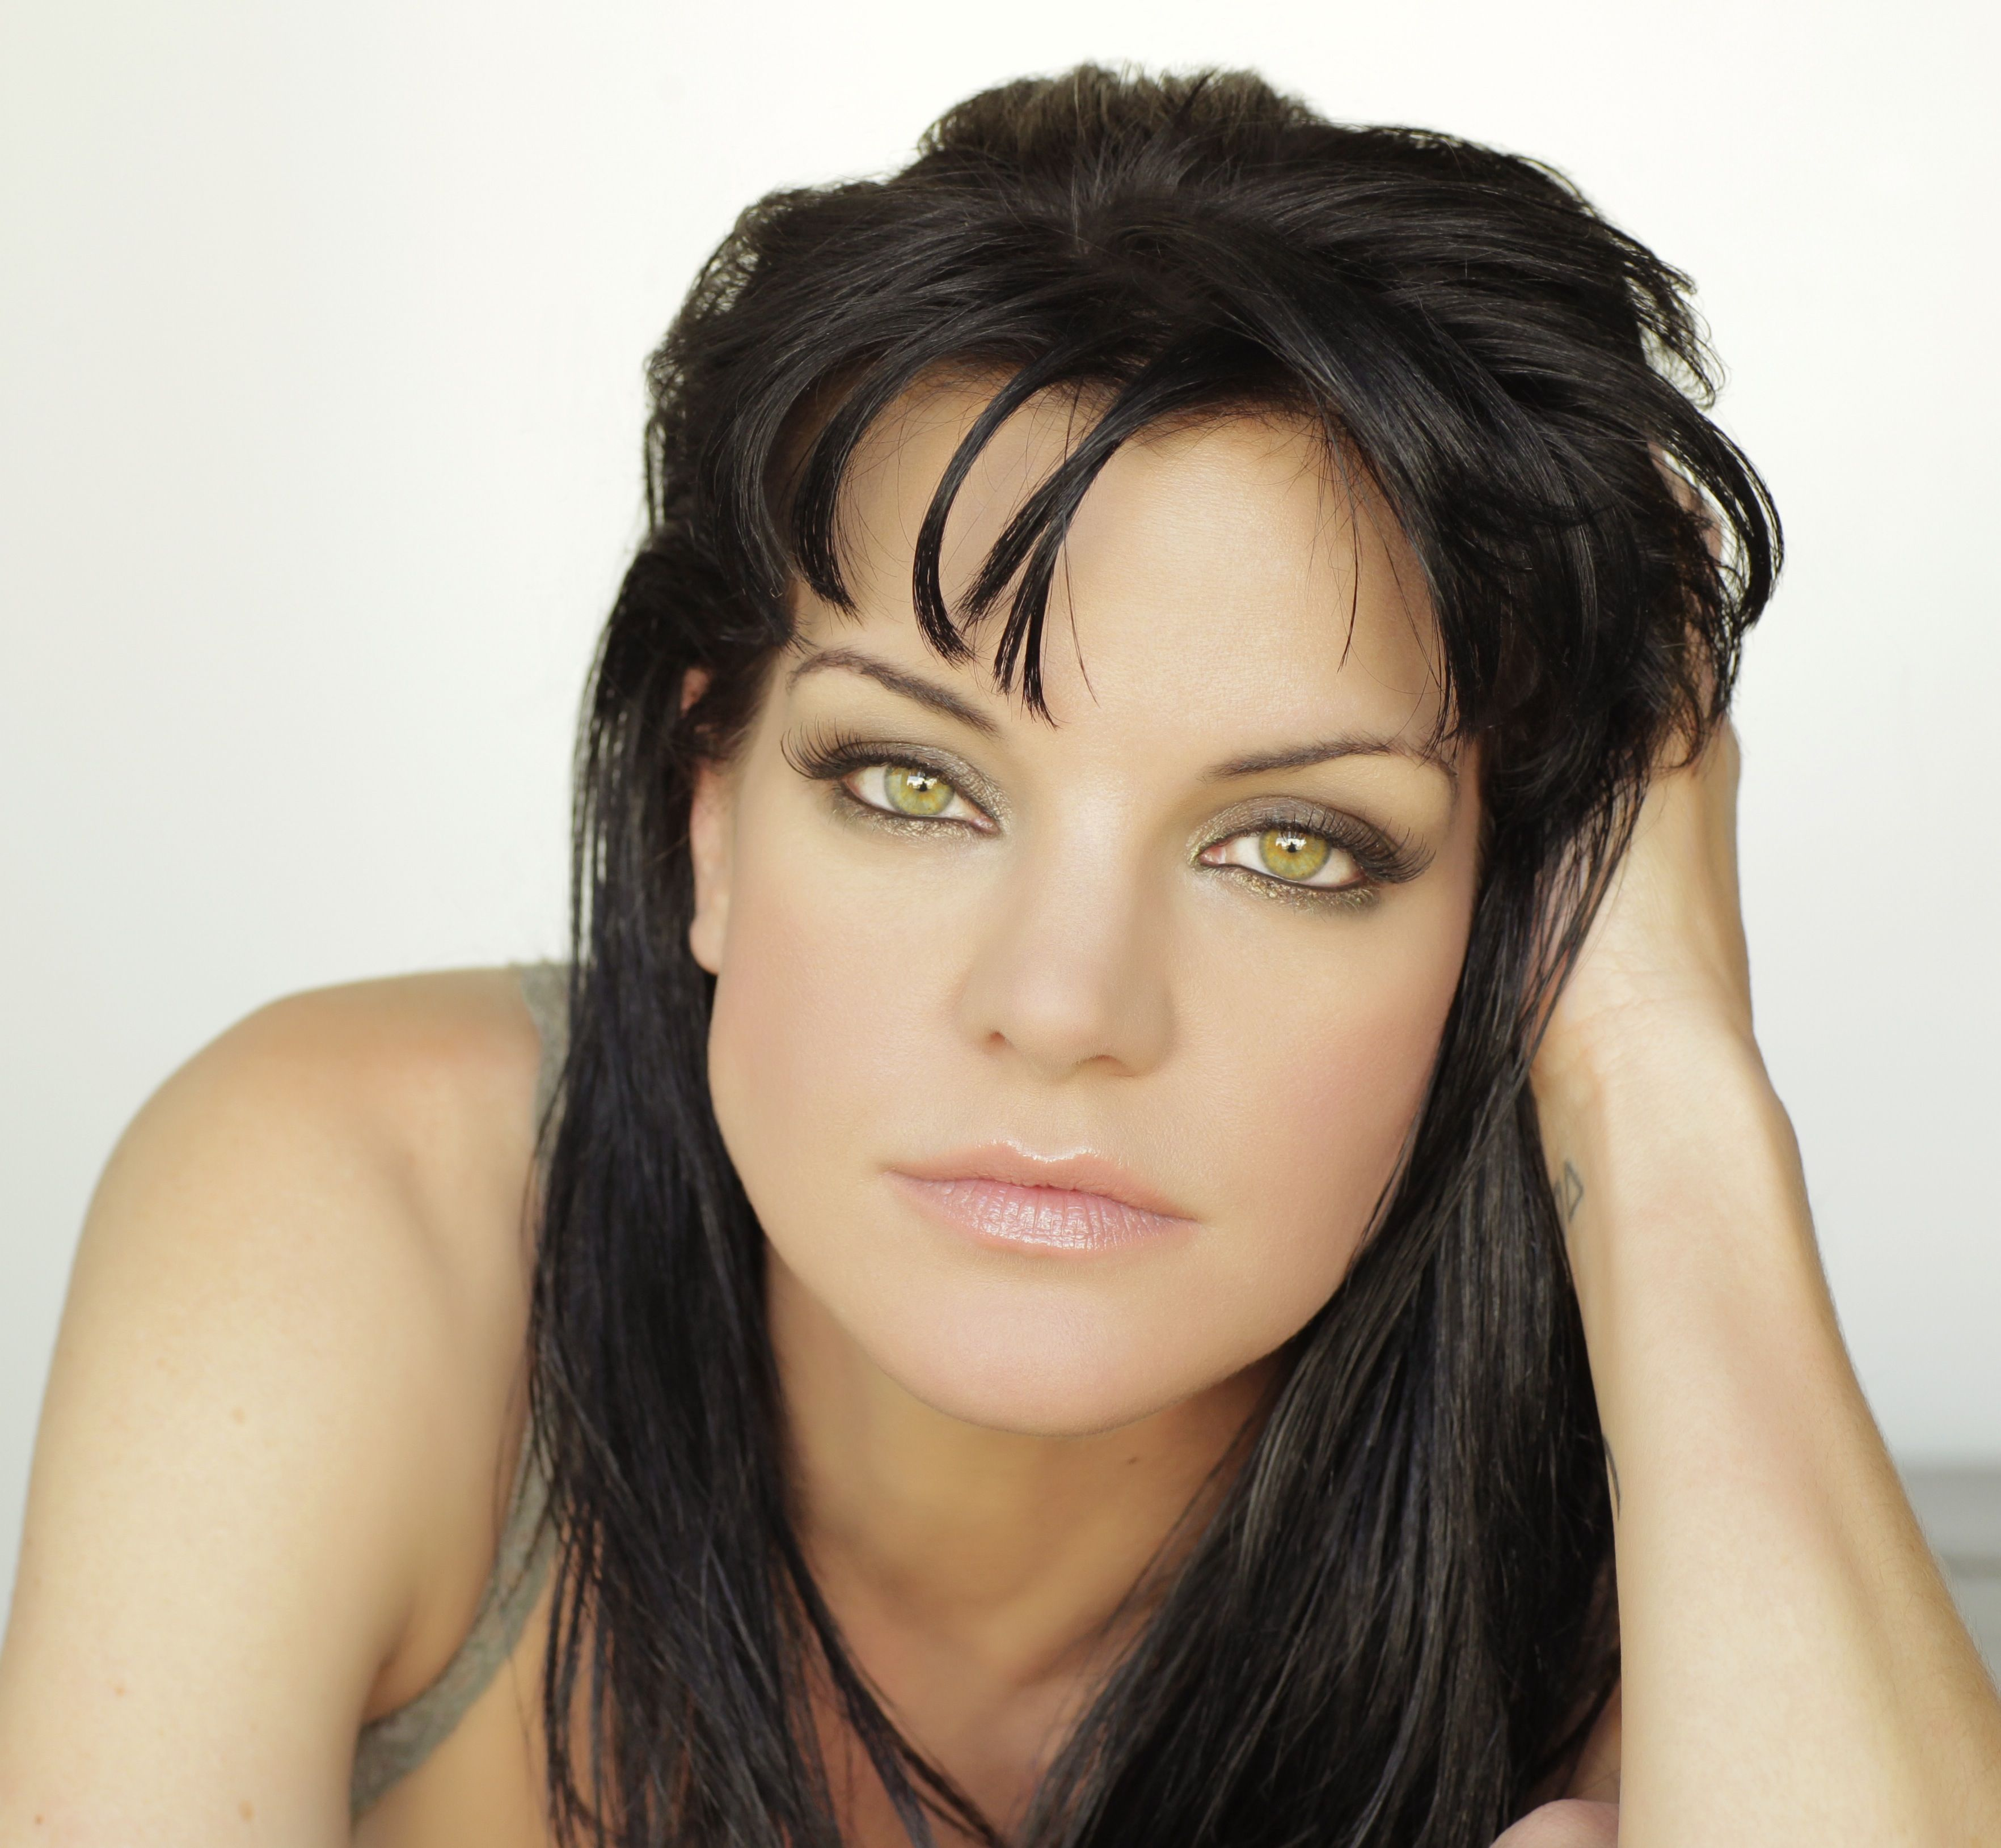 Pauley Perrette 17 Beautiful Women Pinterest Pauley Ideas And Designs